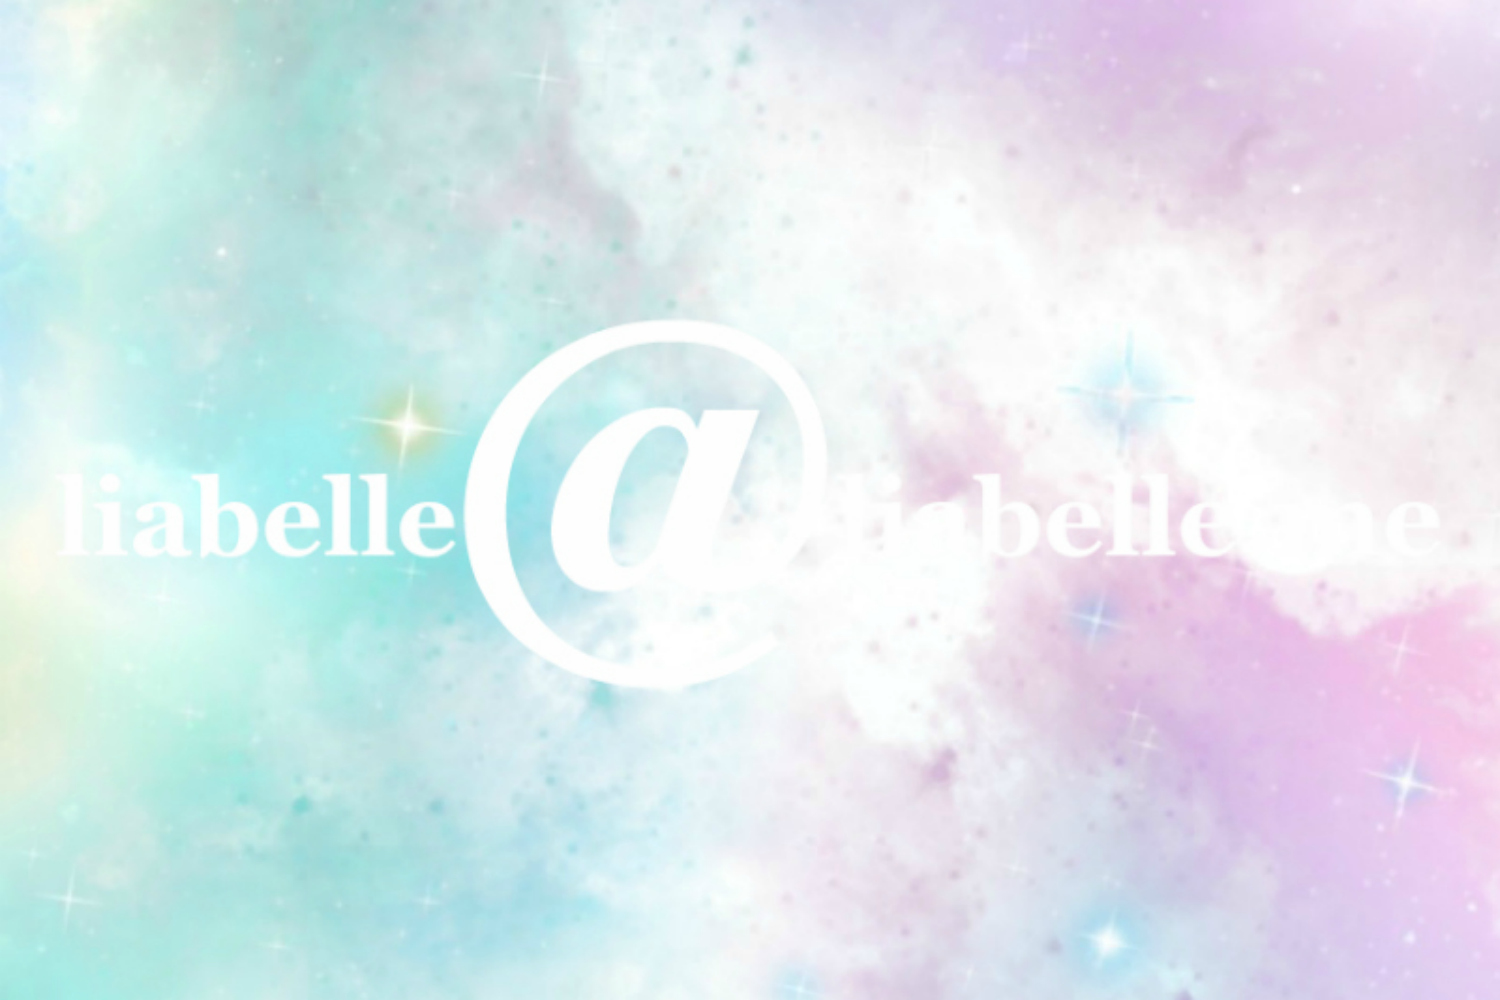 Get in contact with Lia Belle of LiaBelle.me